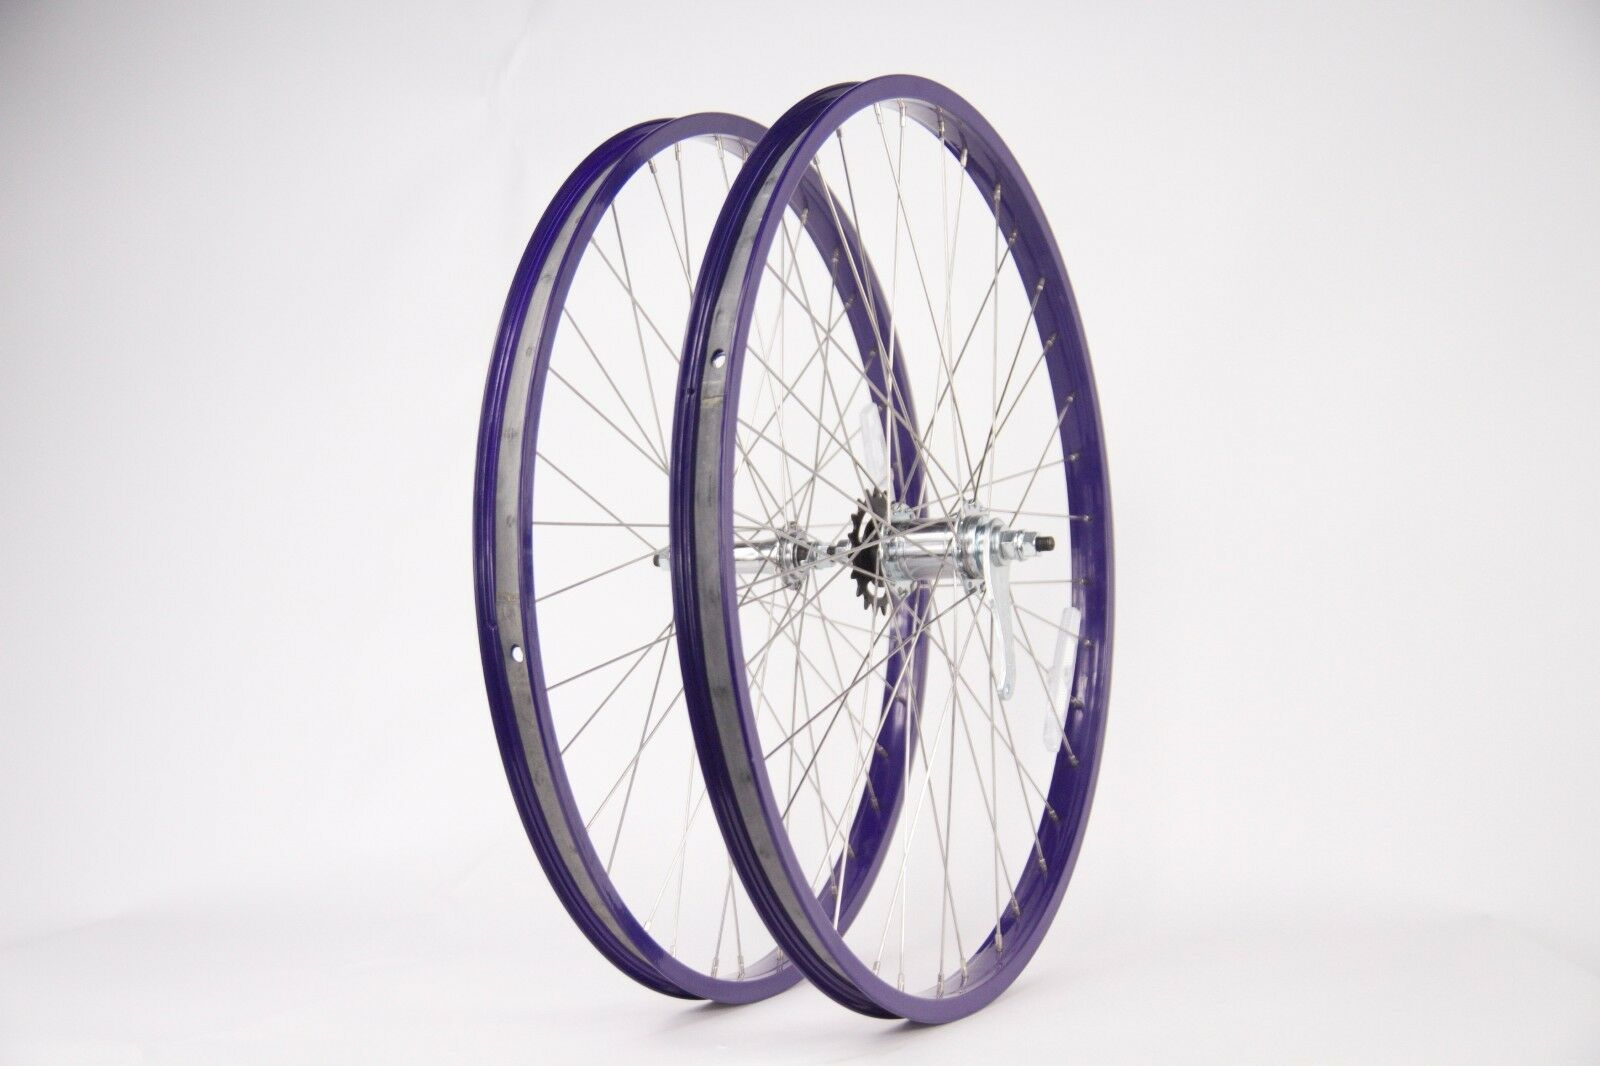 Purple Beach Cruiser  26  Rims W Coaster Brake Front & Rear Wheels  online cheap